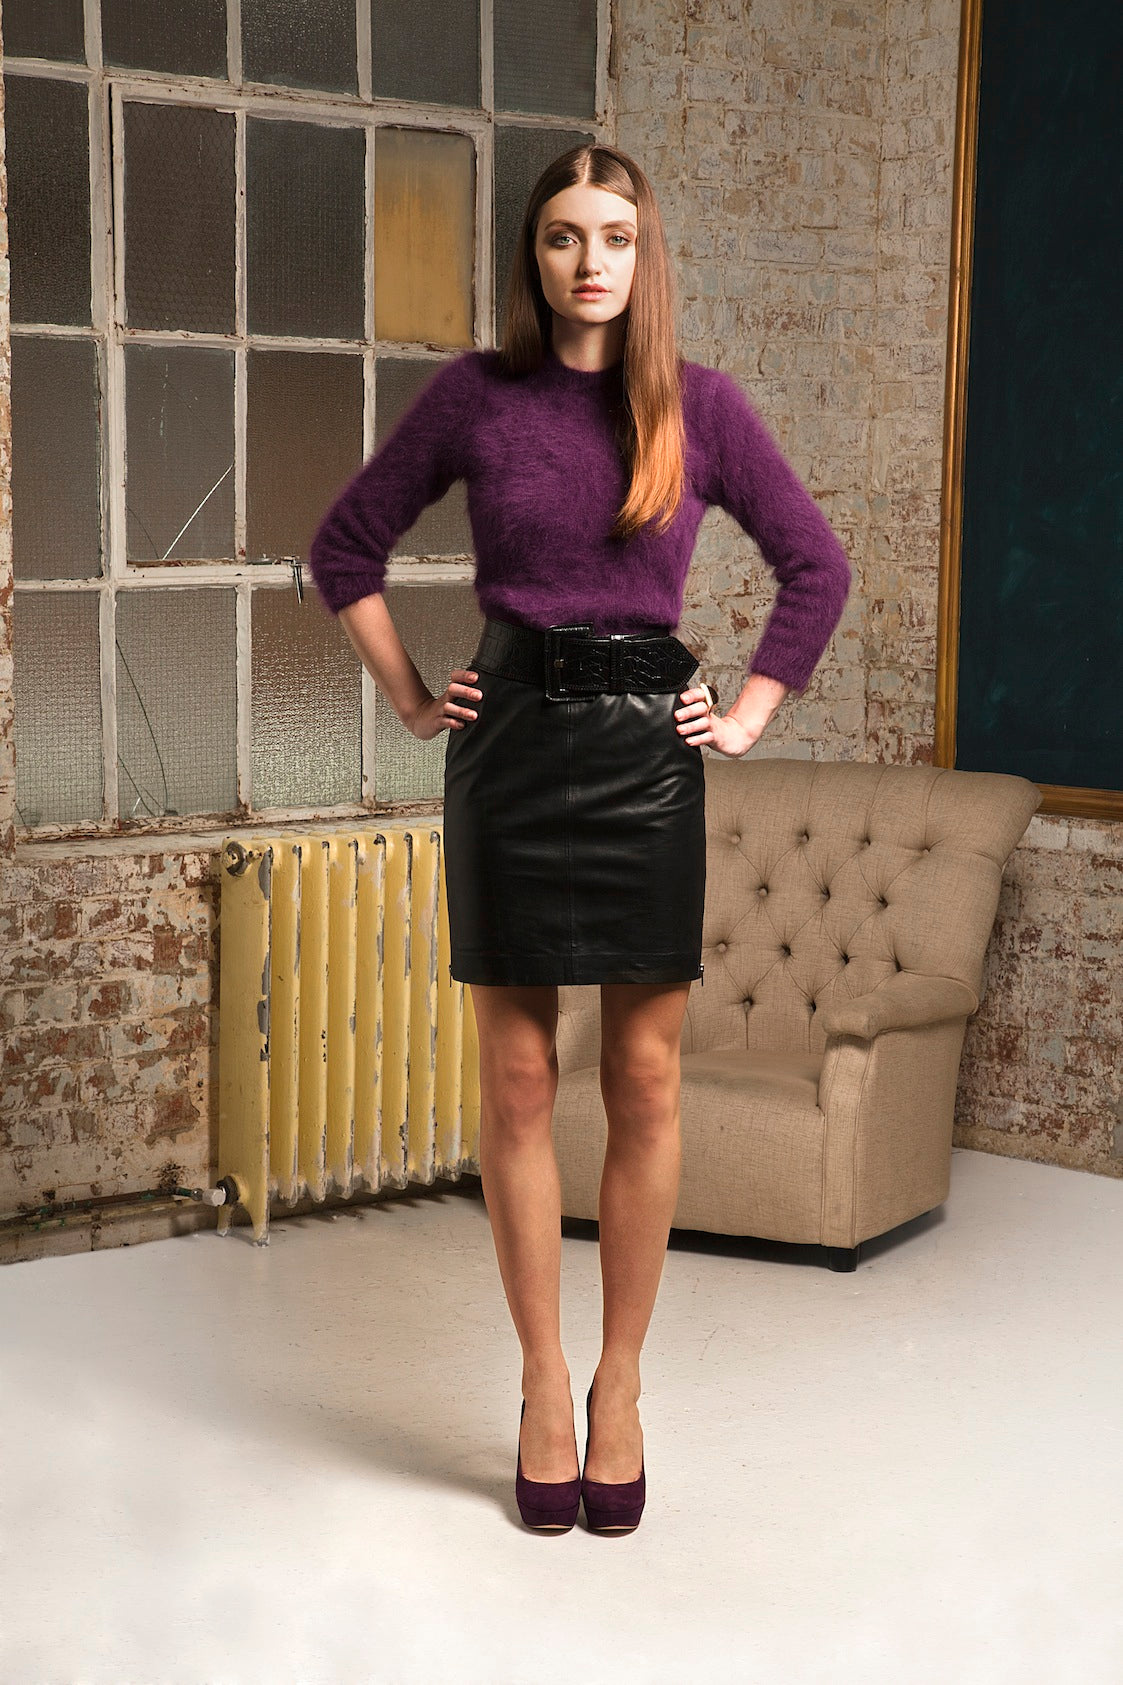 donna ida, london fashion, london style, angora, pruple, sweatshirt, fluffy, leather skirt, black skirt, belt, shoes